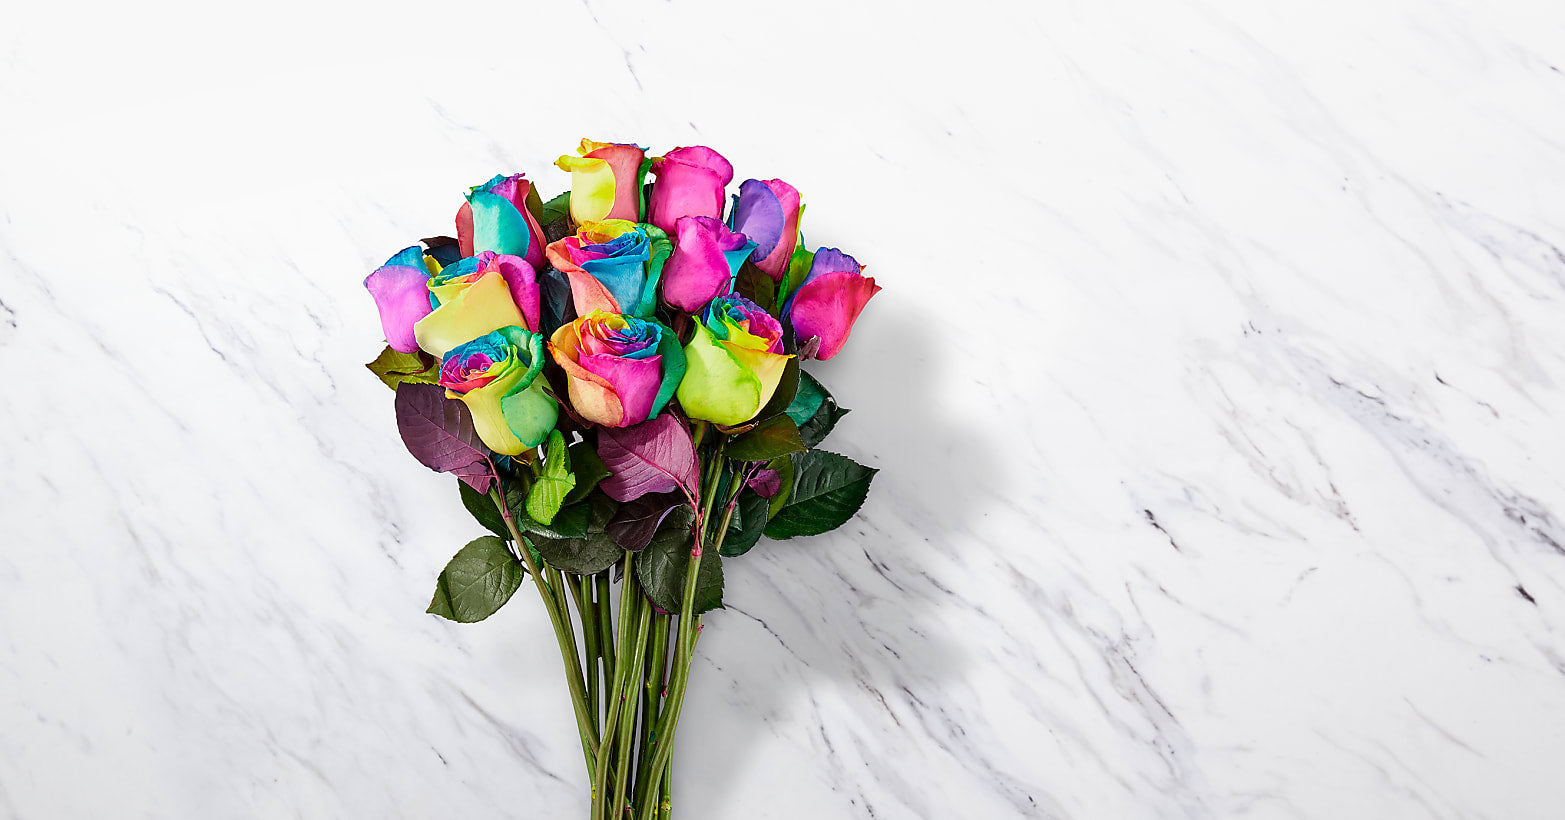 Rainbow Rose Bouquet - Image 2 Of 2